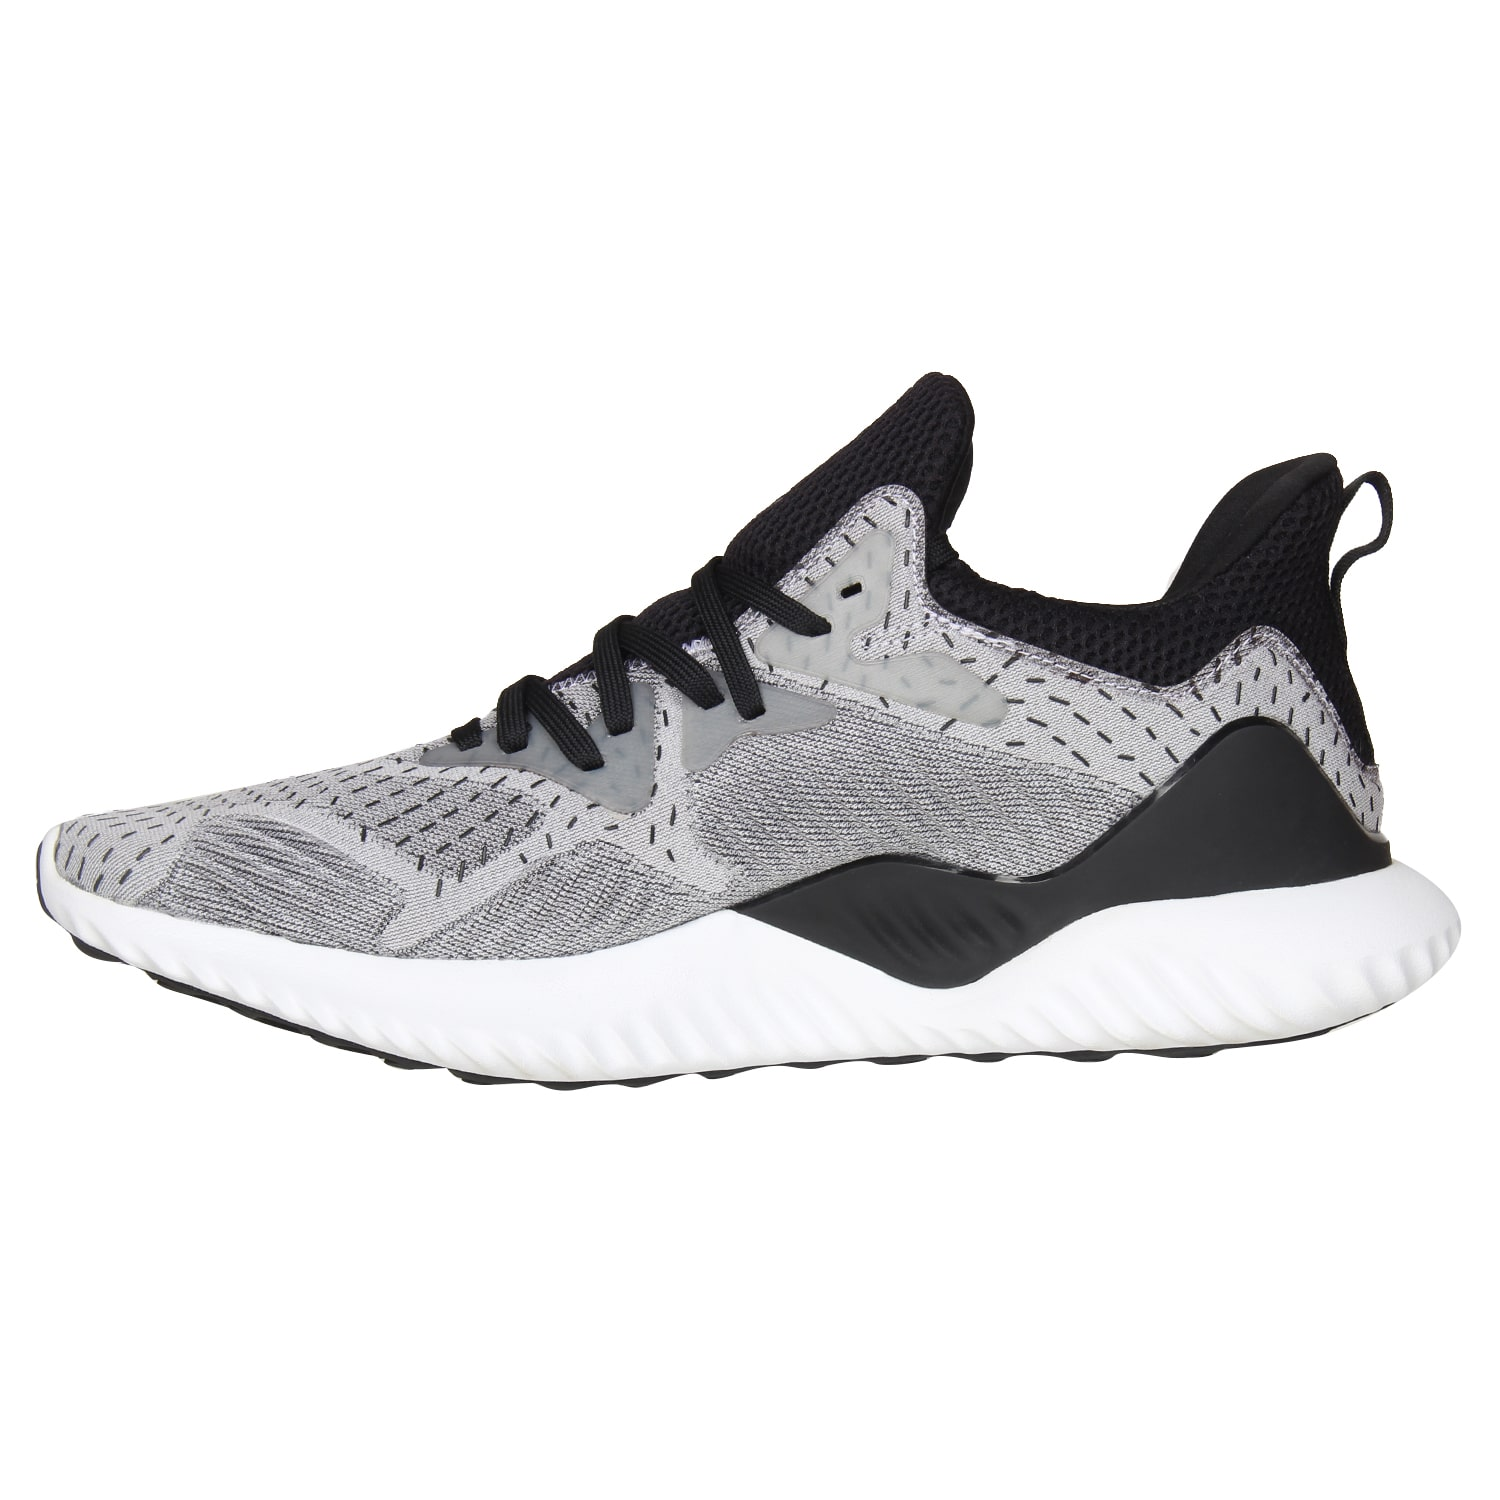 a6e07c8b1 Adidas Men White Running Shoes - Db1126 for Men - Buy Adidas Men s Sport  Shoes at 14% off.